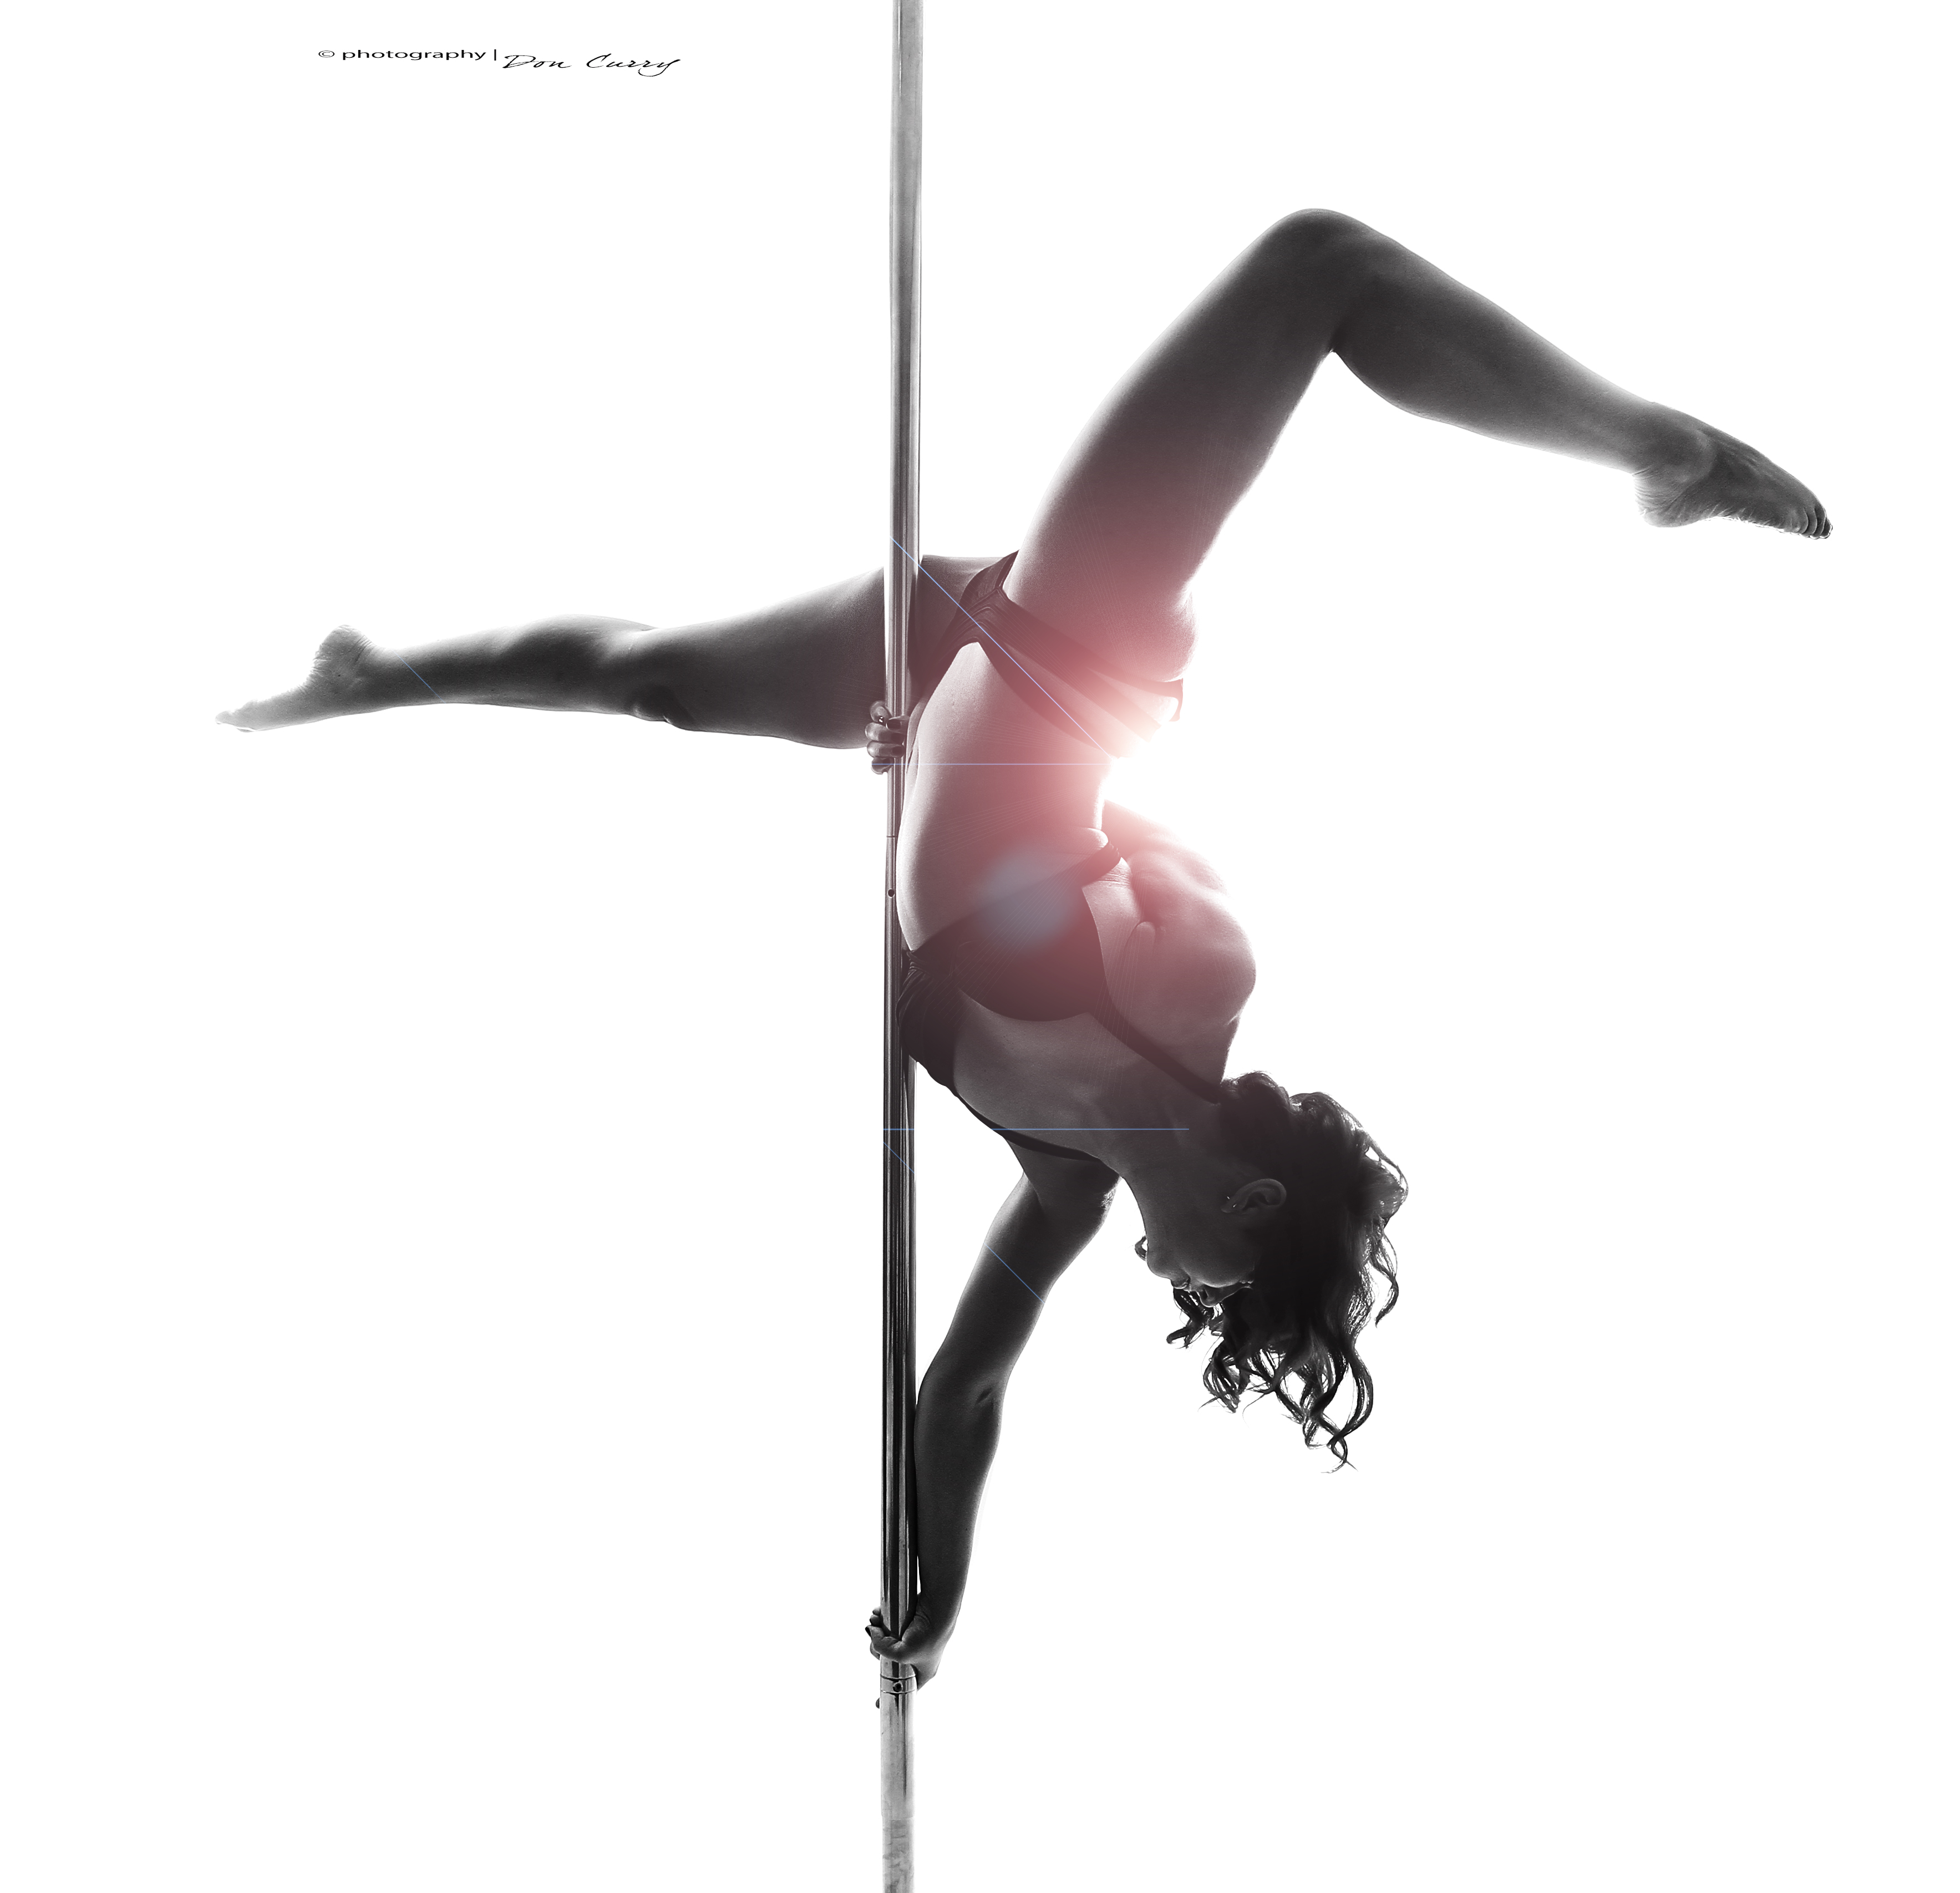 Revved Up Pole - Pole Dancing Classes in Ashford, Kent at ...